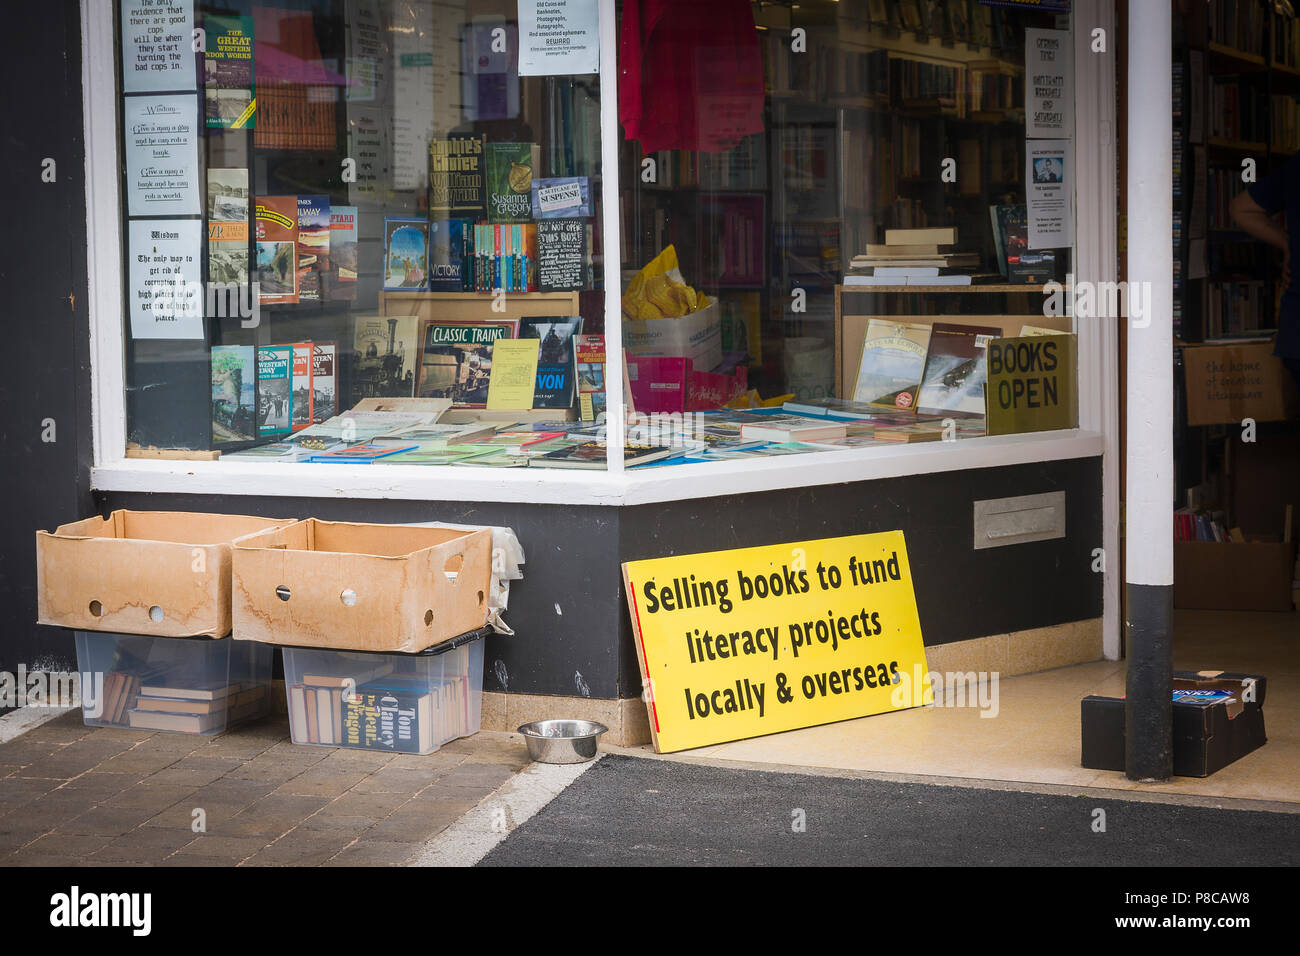 Shop selling old books and remainder stock to fund literacy projects locallyin Devon England  and overseas - Stock Image